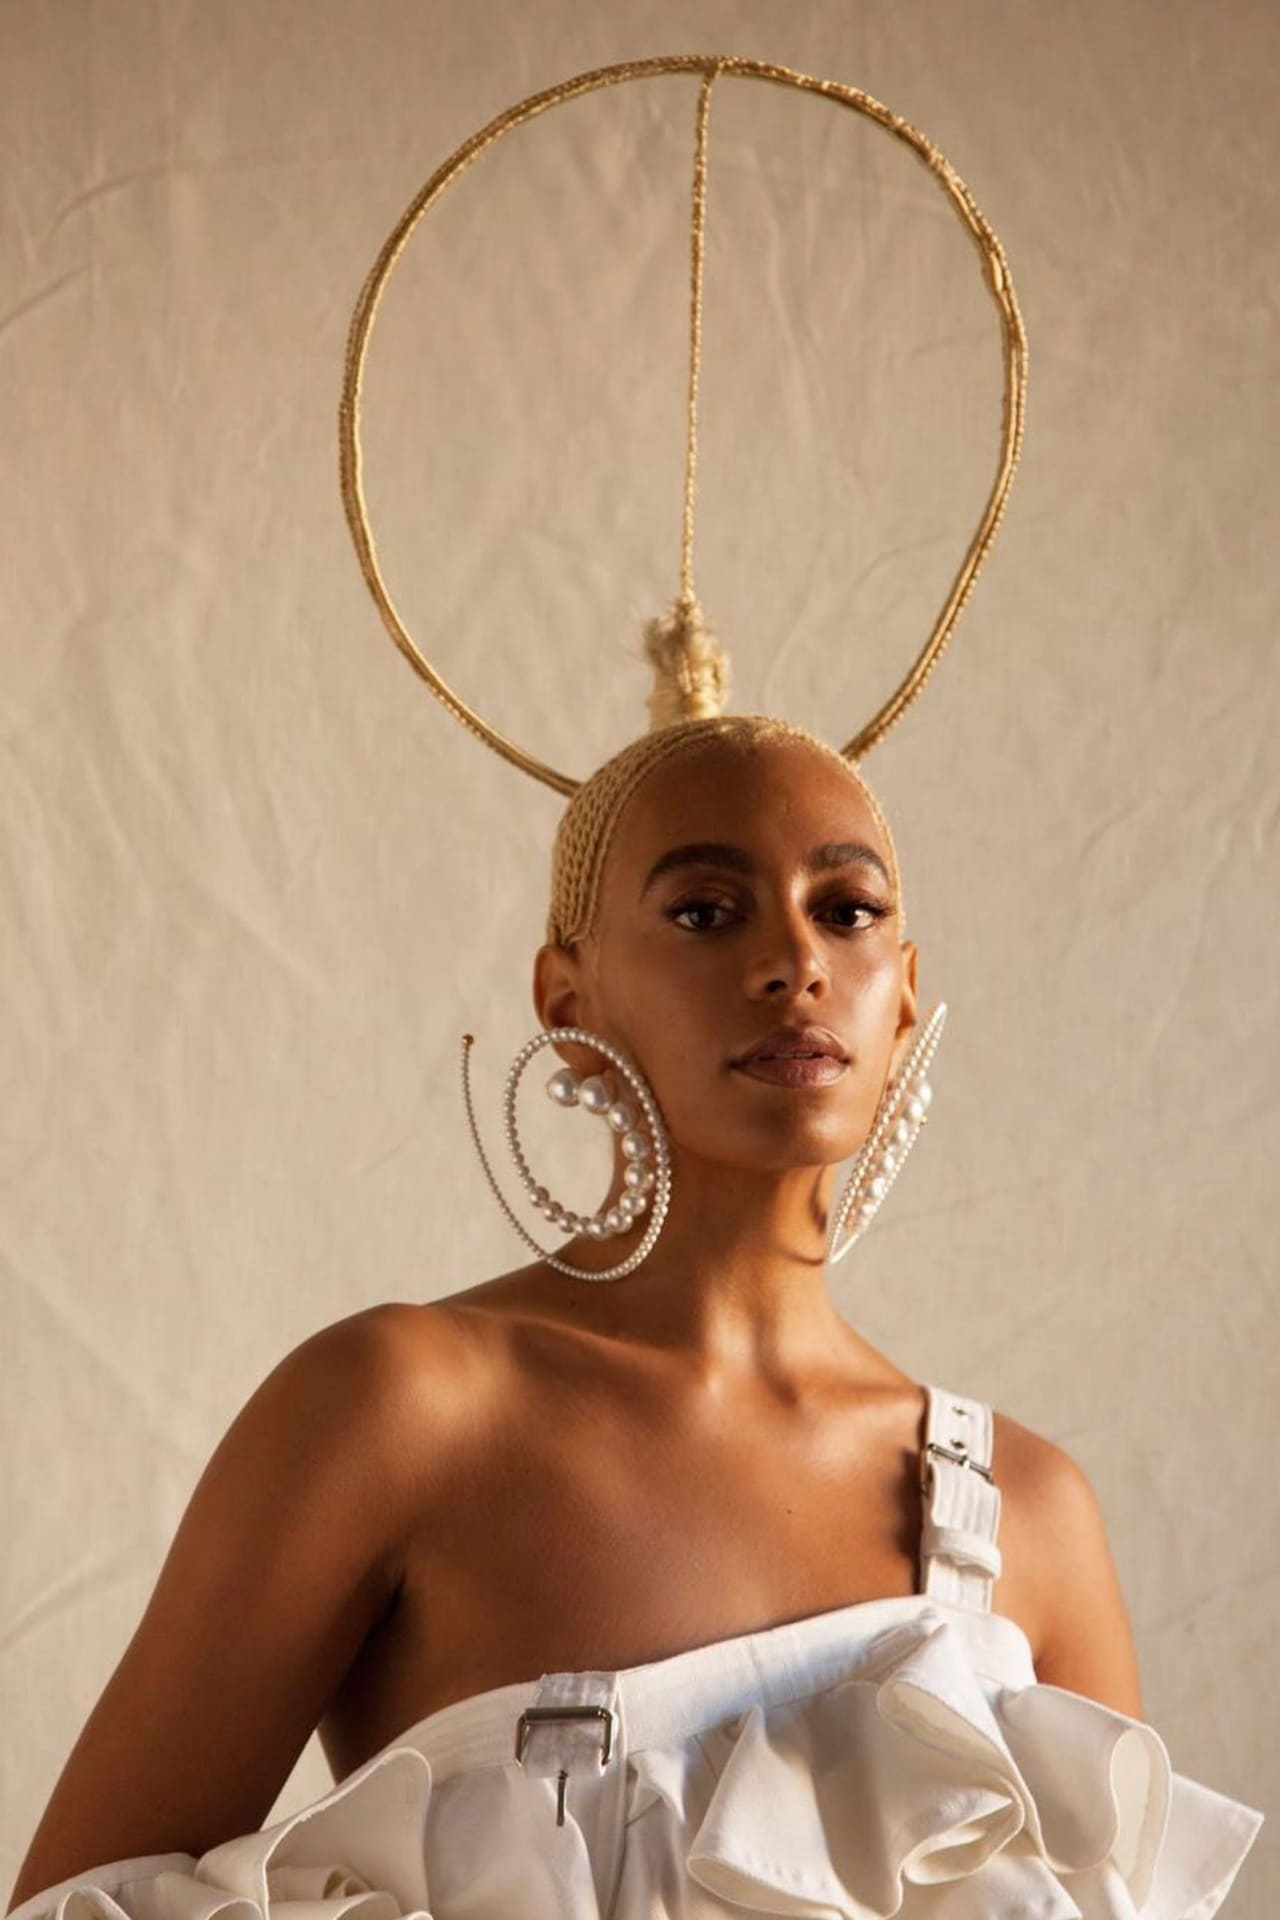 Solange Knowles isHerself